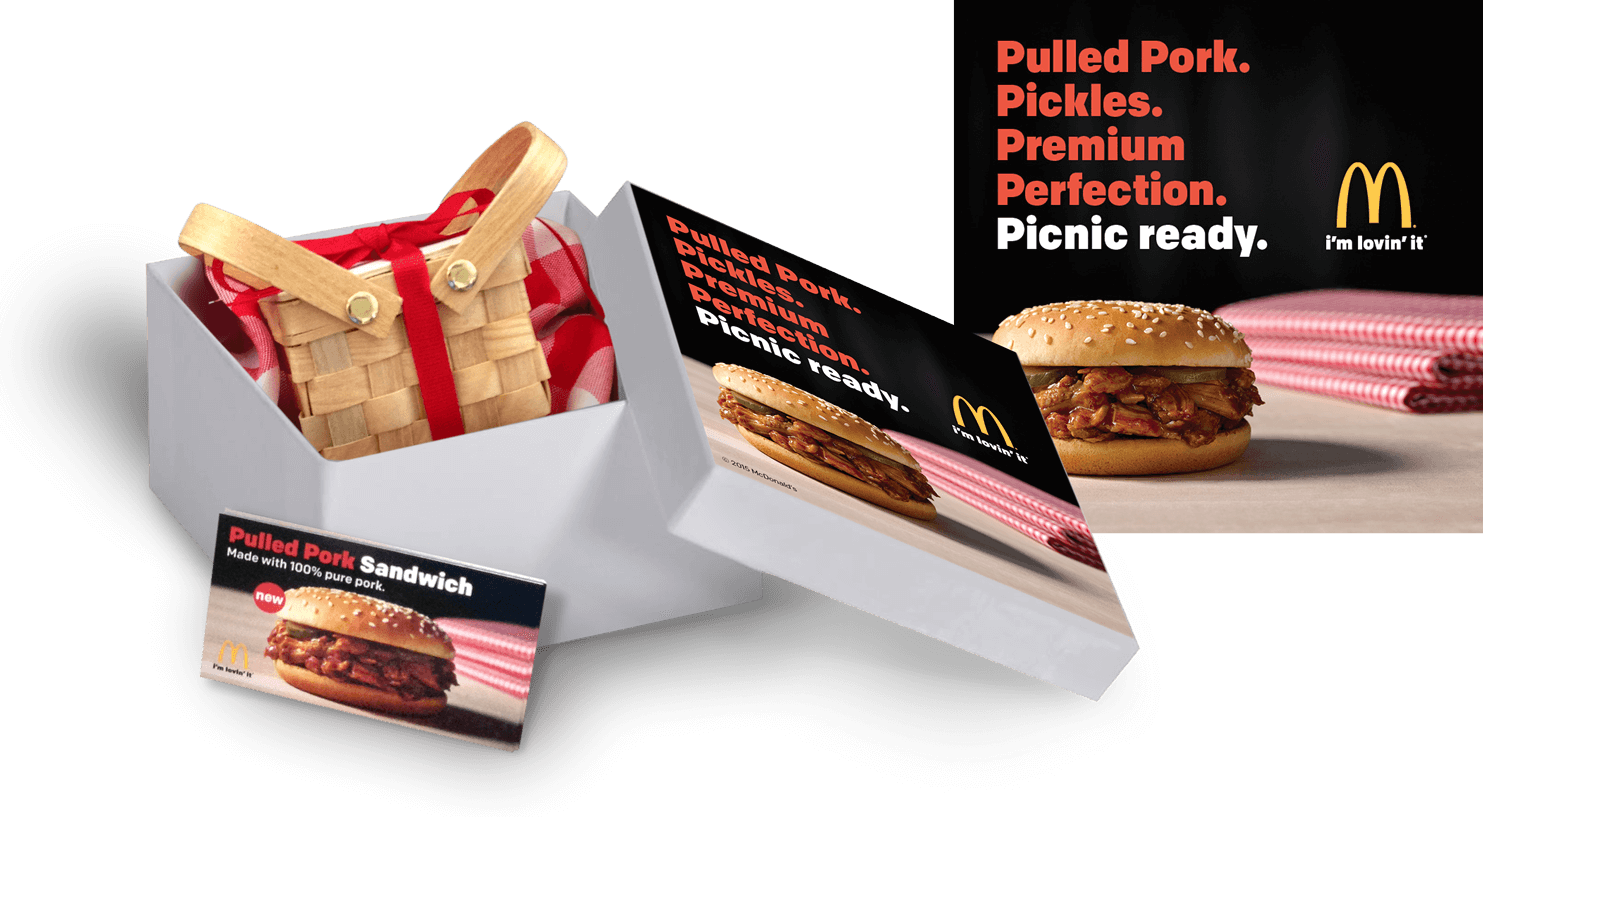 "M<span class=""lowercase"">c</span>Donald's <strong>Pulled Pork Media Kit</strong>"